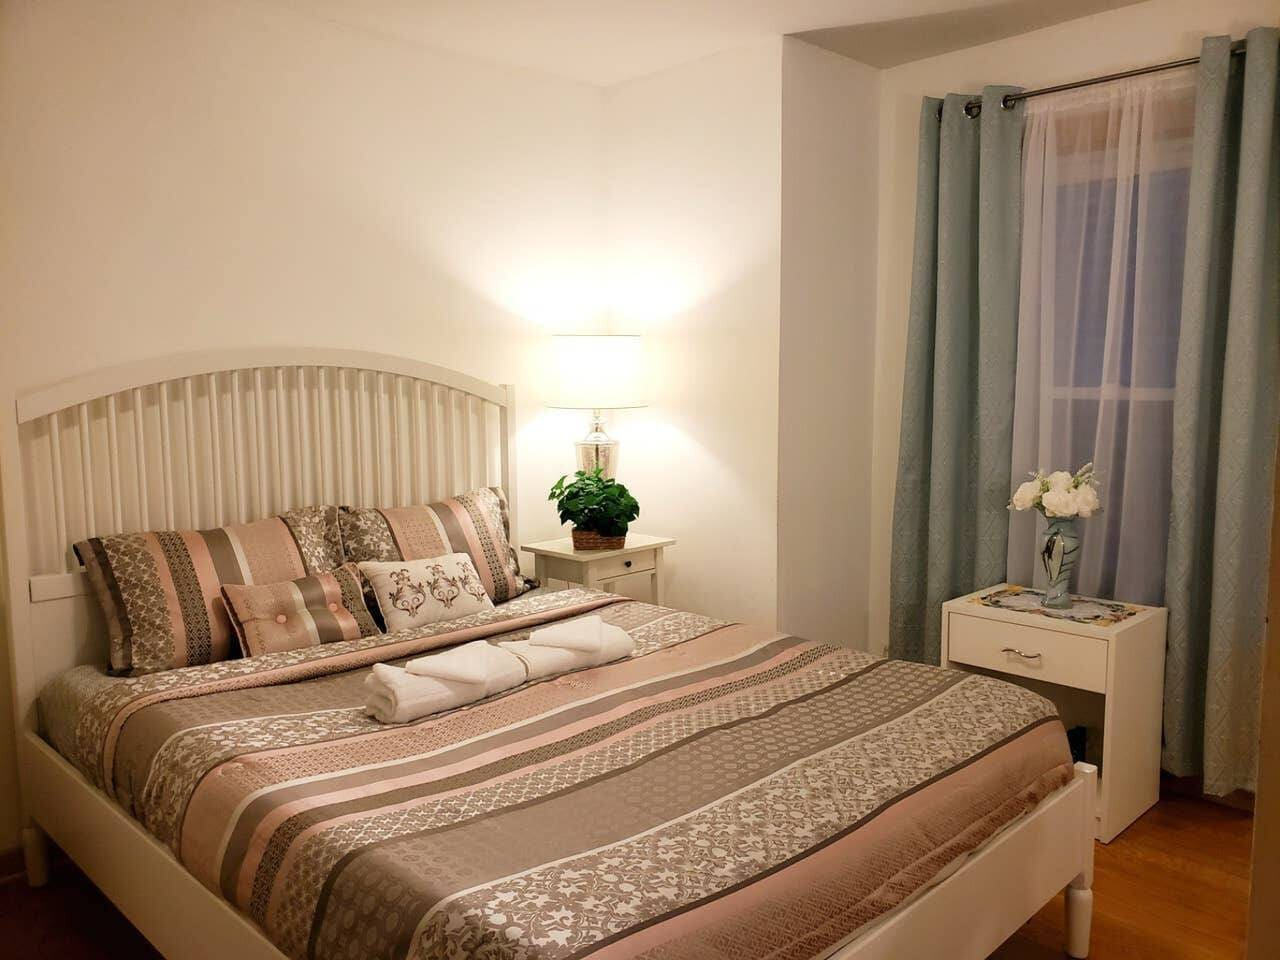 This is exactly how you will find your room when you check-in. Bed is queen-sized with GREEN TEA & ALOE memory foam mattress. Fresh linens, towels and washcloths are provided and will be on your bed upon arrival.